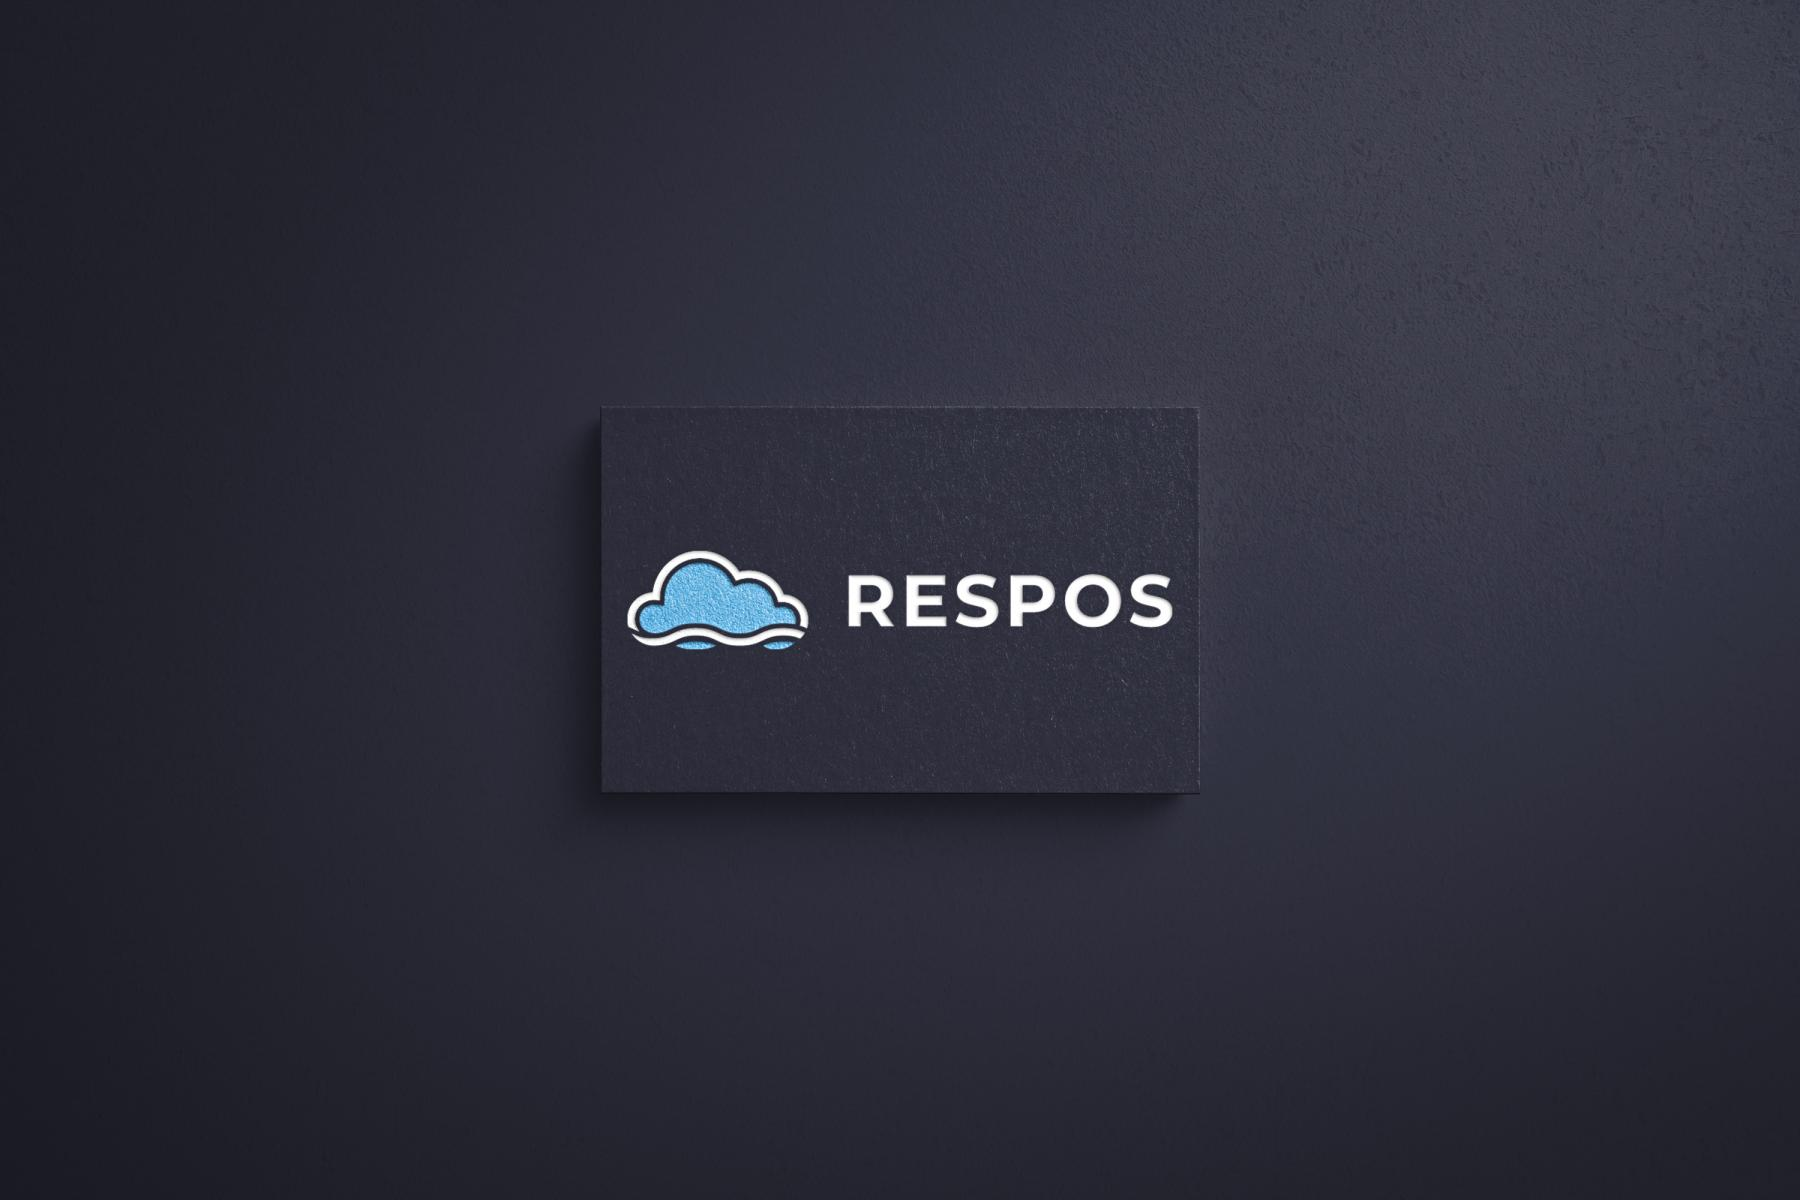 ResPOS By TechBros. A Complete Restaurant POS solution developed by Sharfuddin Shawon